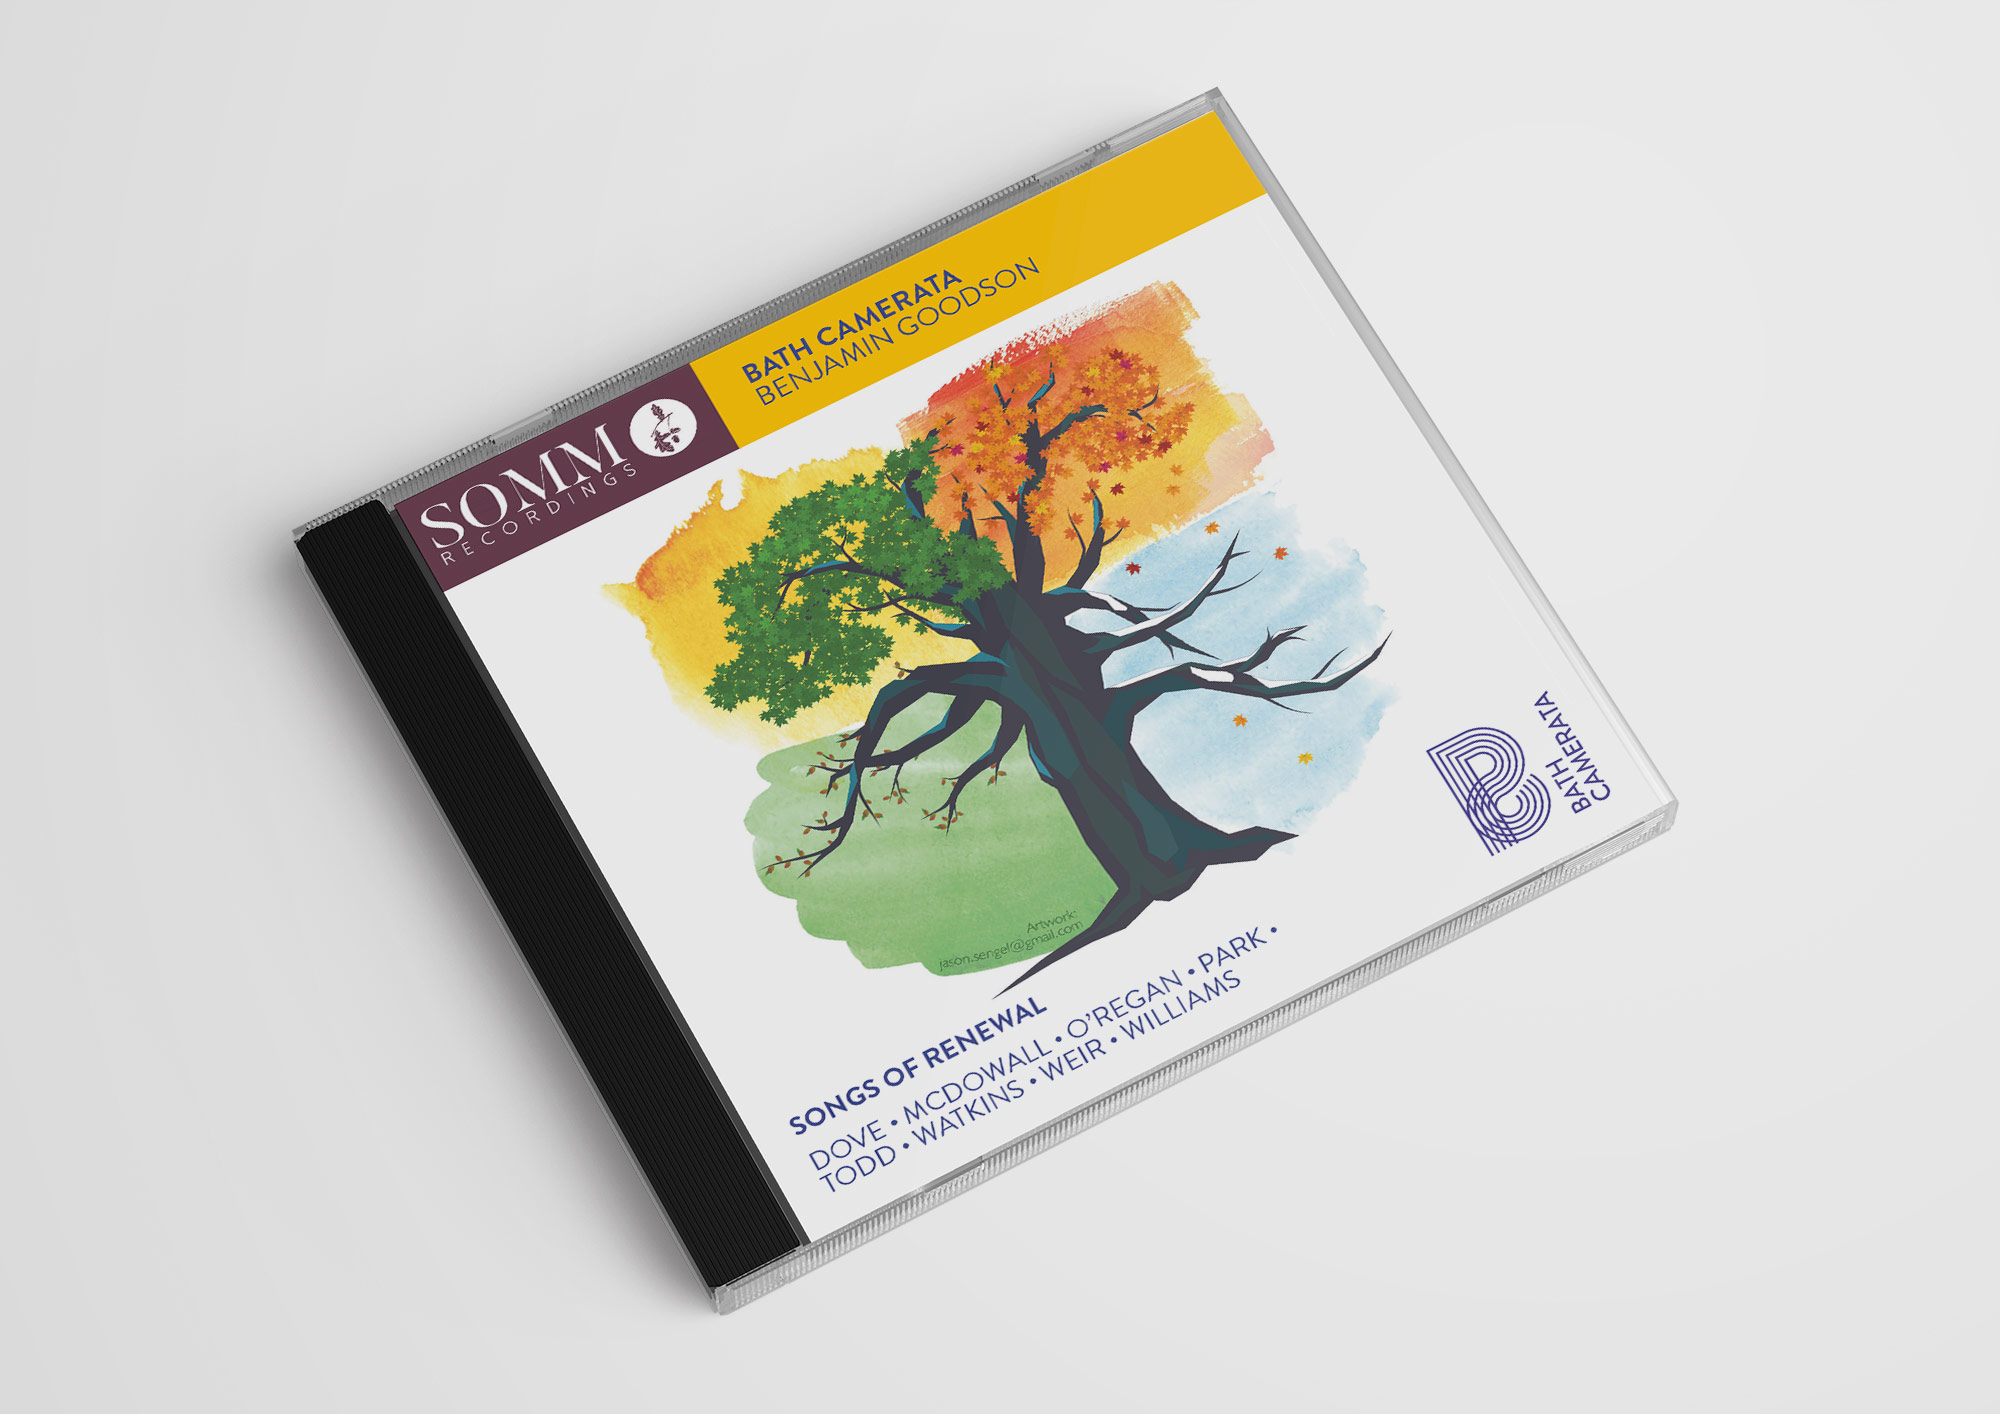 Bath Camerata CD cover